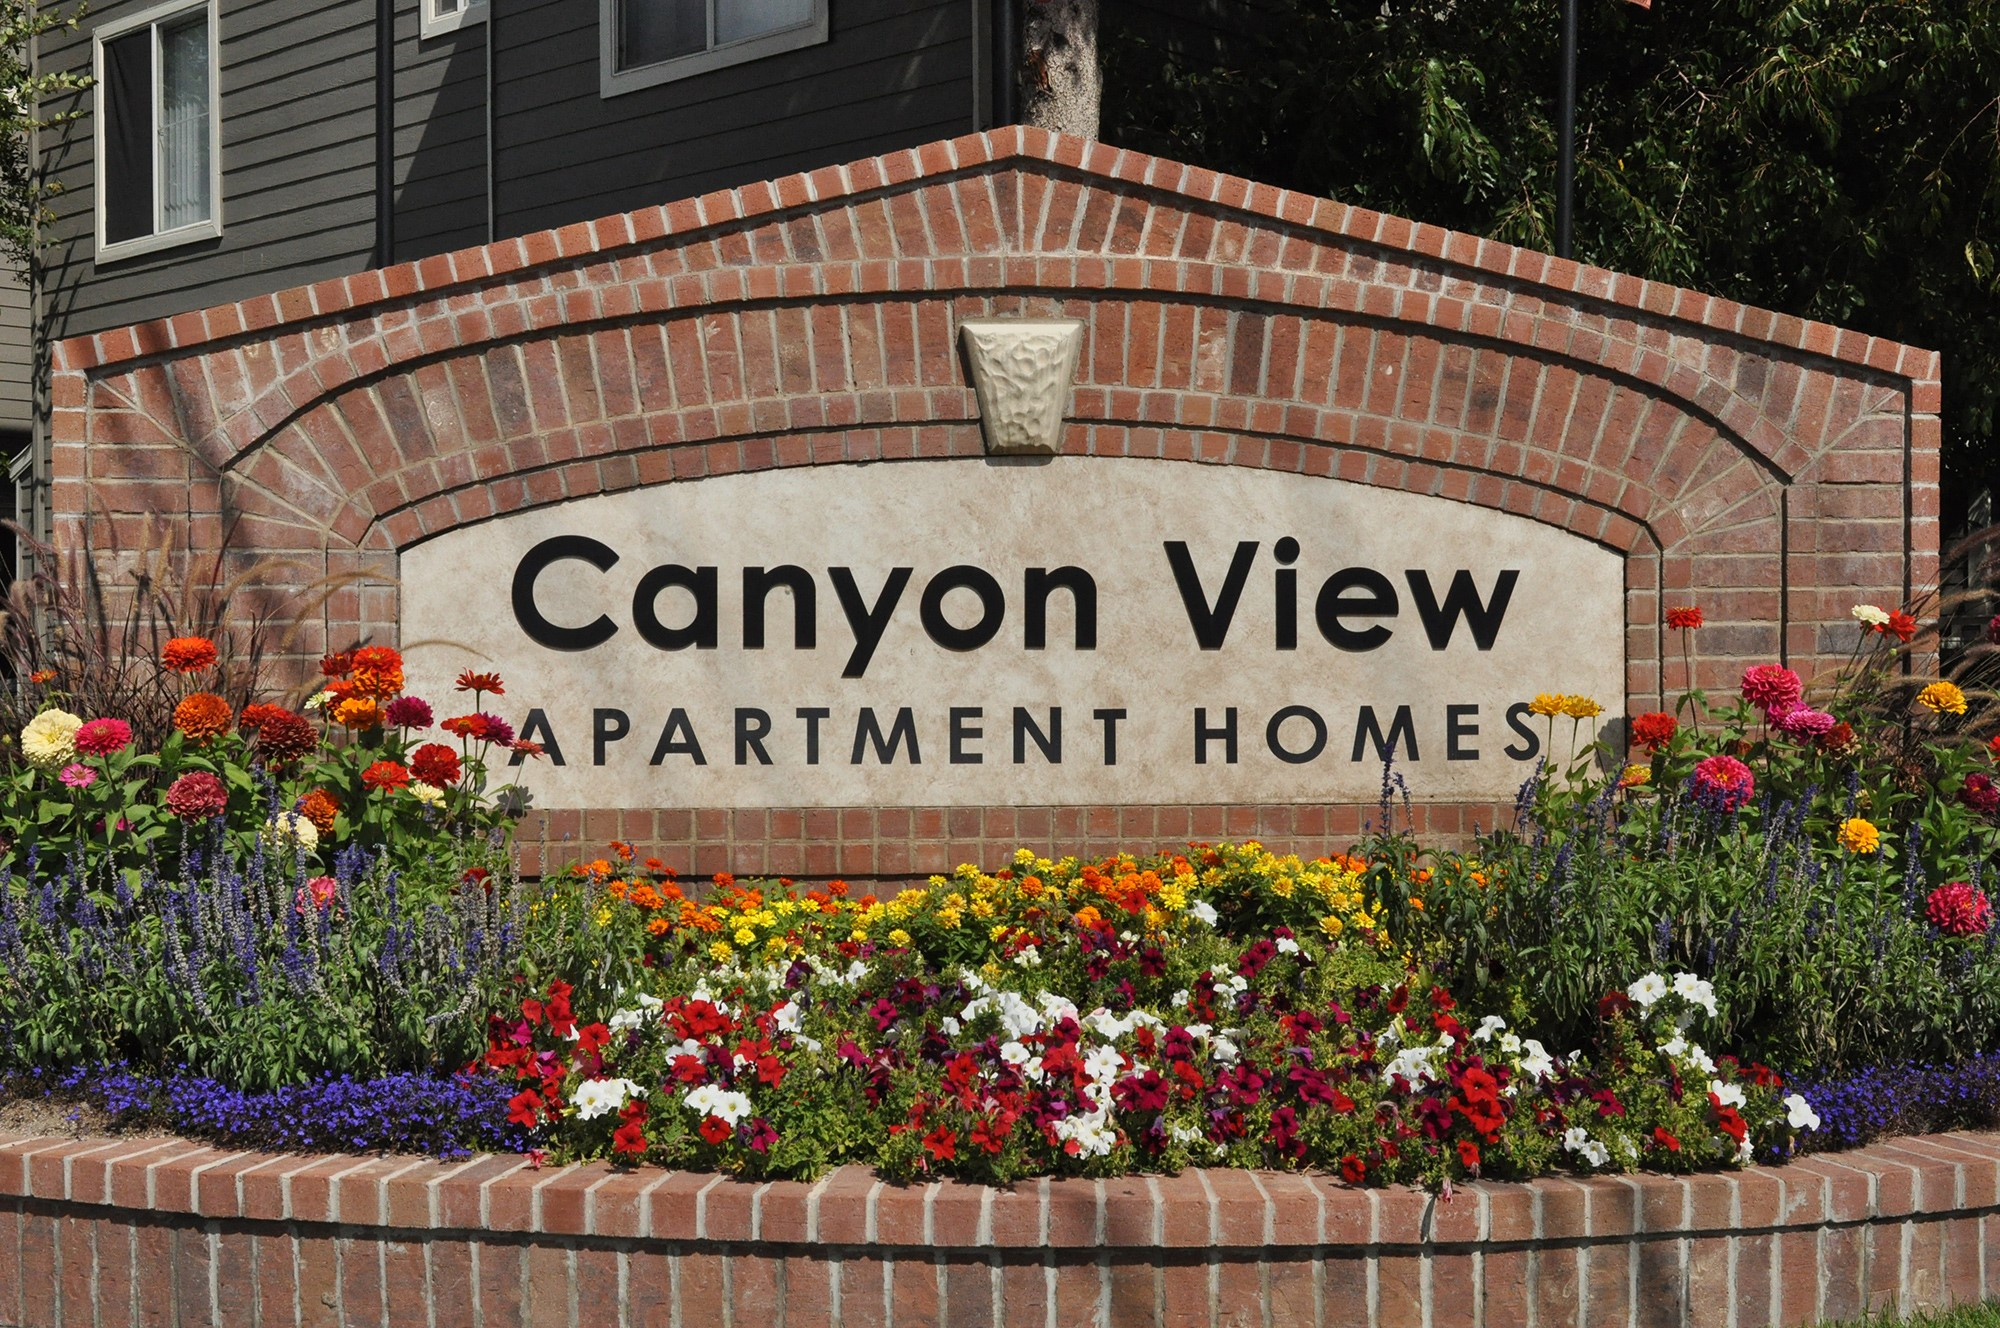 Canyon View for rent